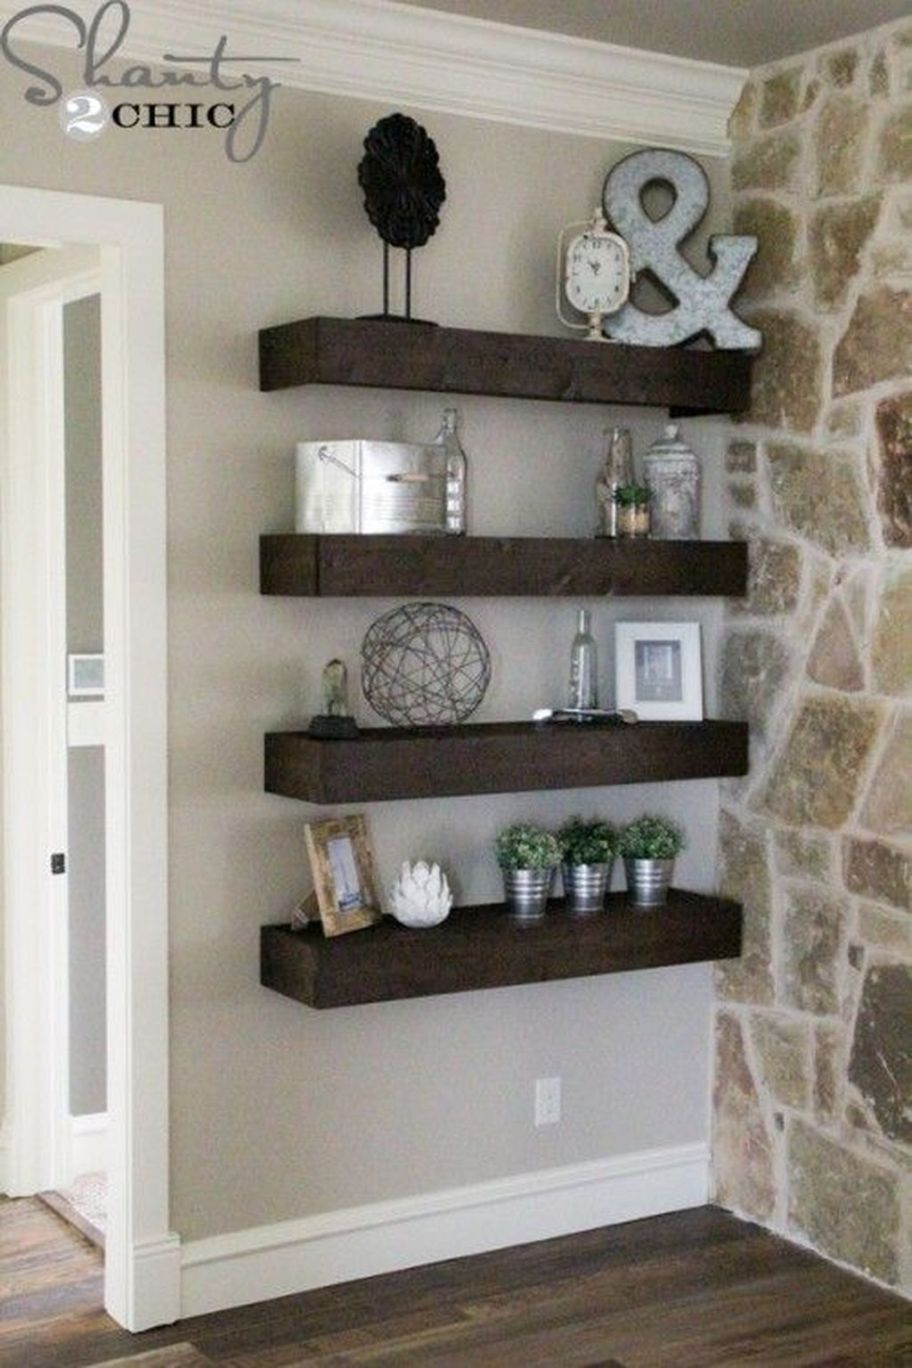 20 Stunning Rustic Living Room Decor Ideas Floating Shelves Diy Wall Decor Living Room #rustic #living #room #shelf